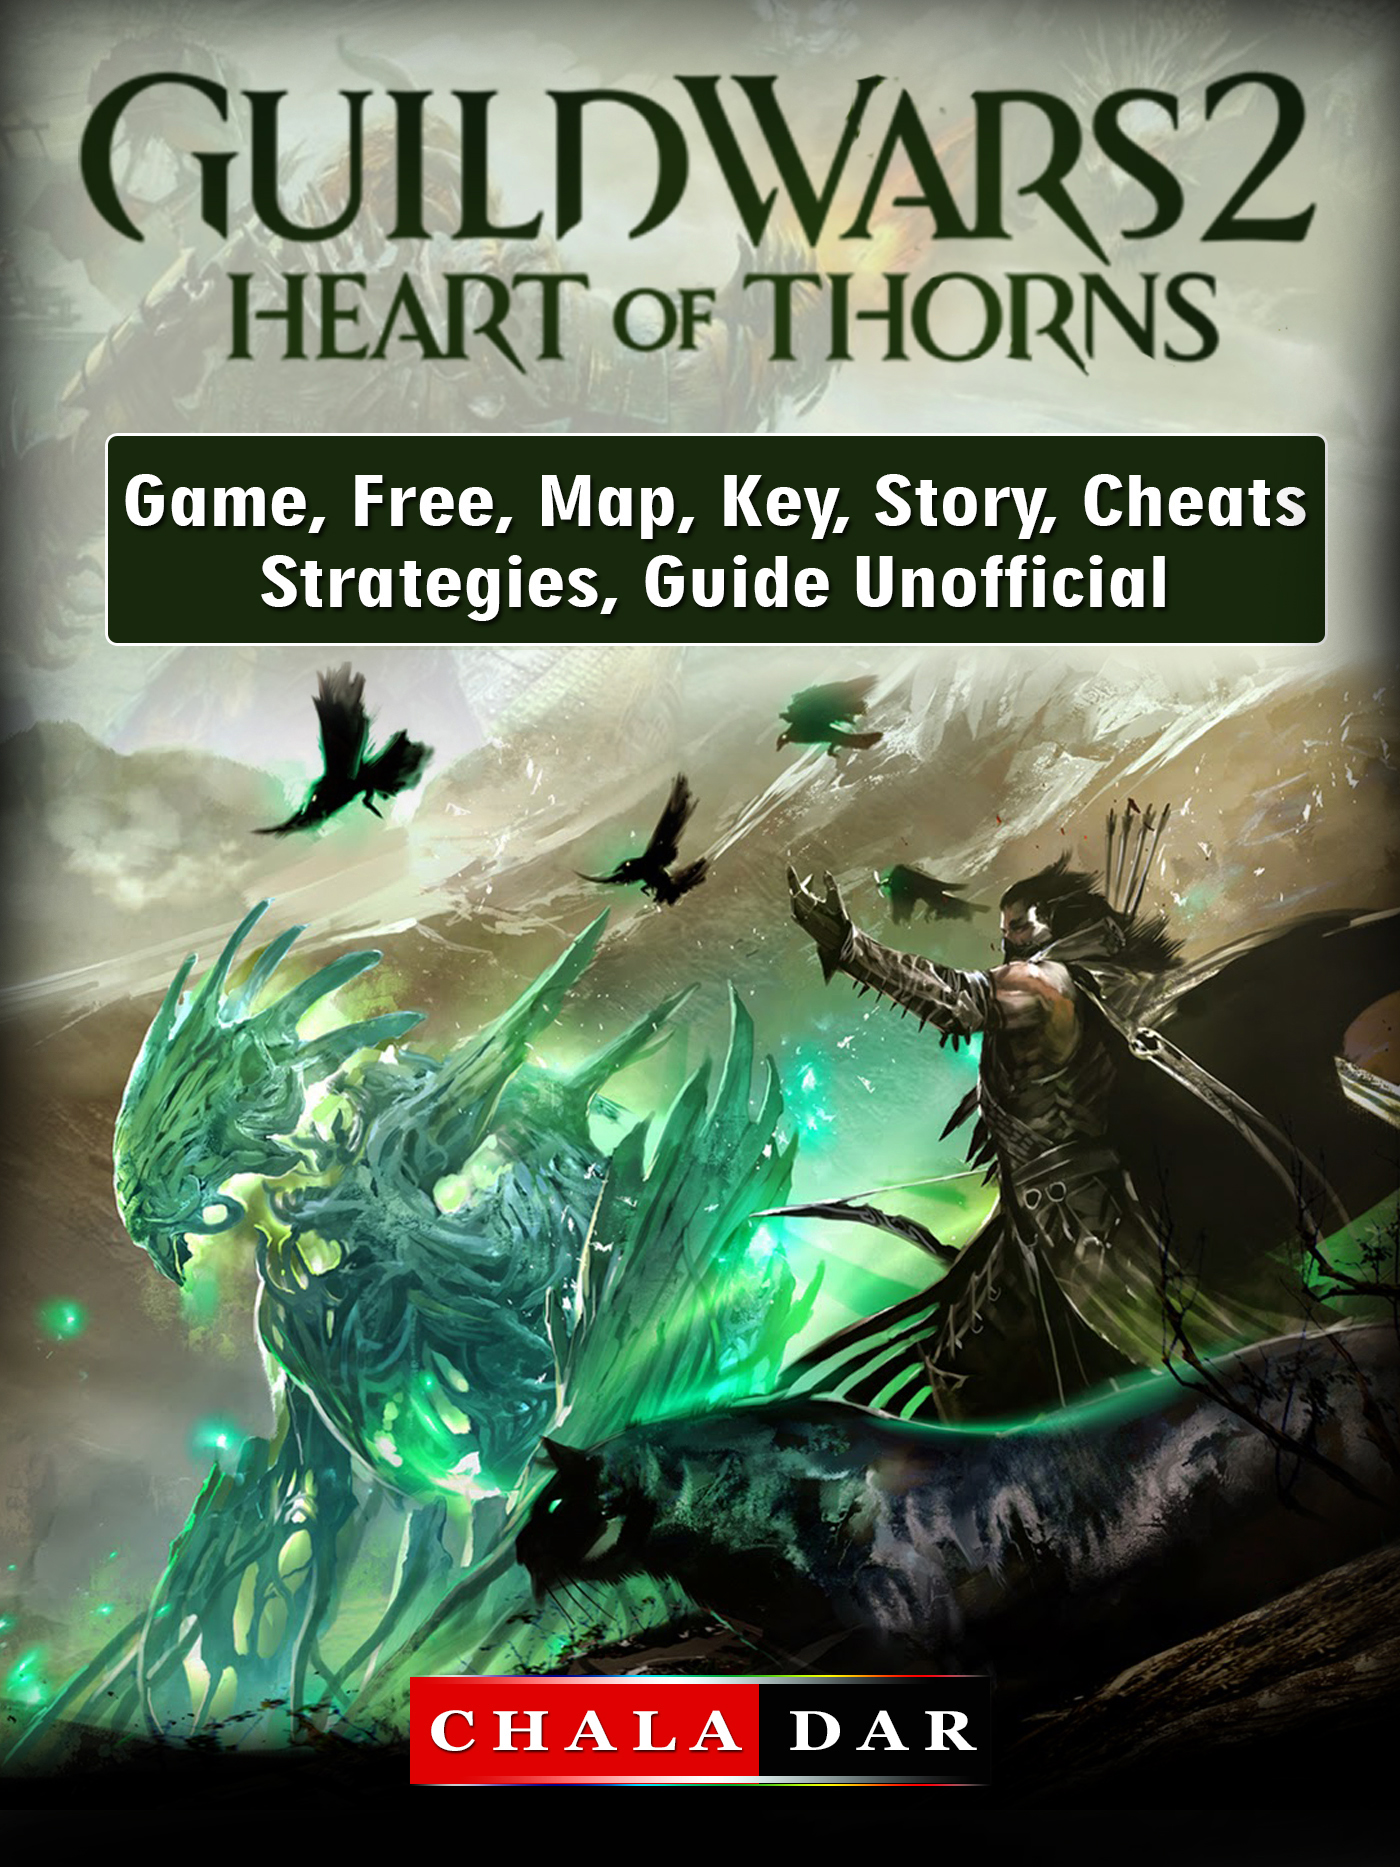 Guild Wars 2 Heart of Thorns Game, Free, Map, Key, Story, Cheats, Strategies, Guide Unofficial By Chala Dar